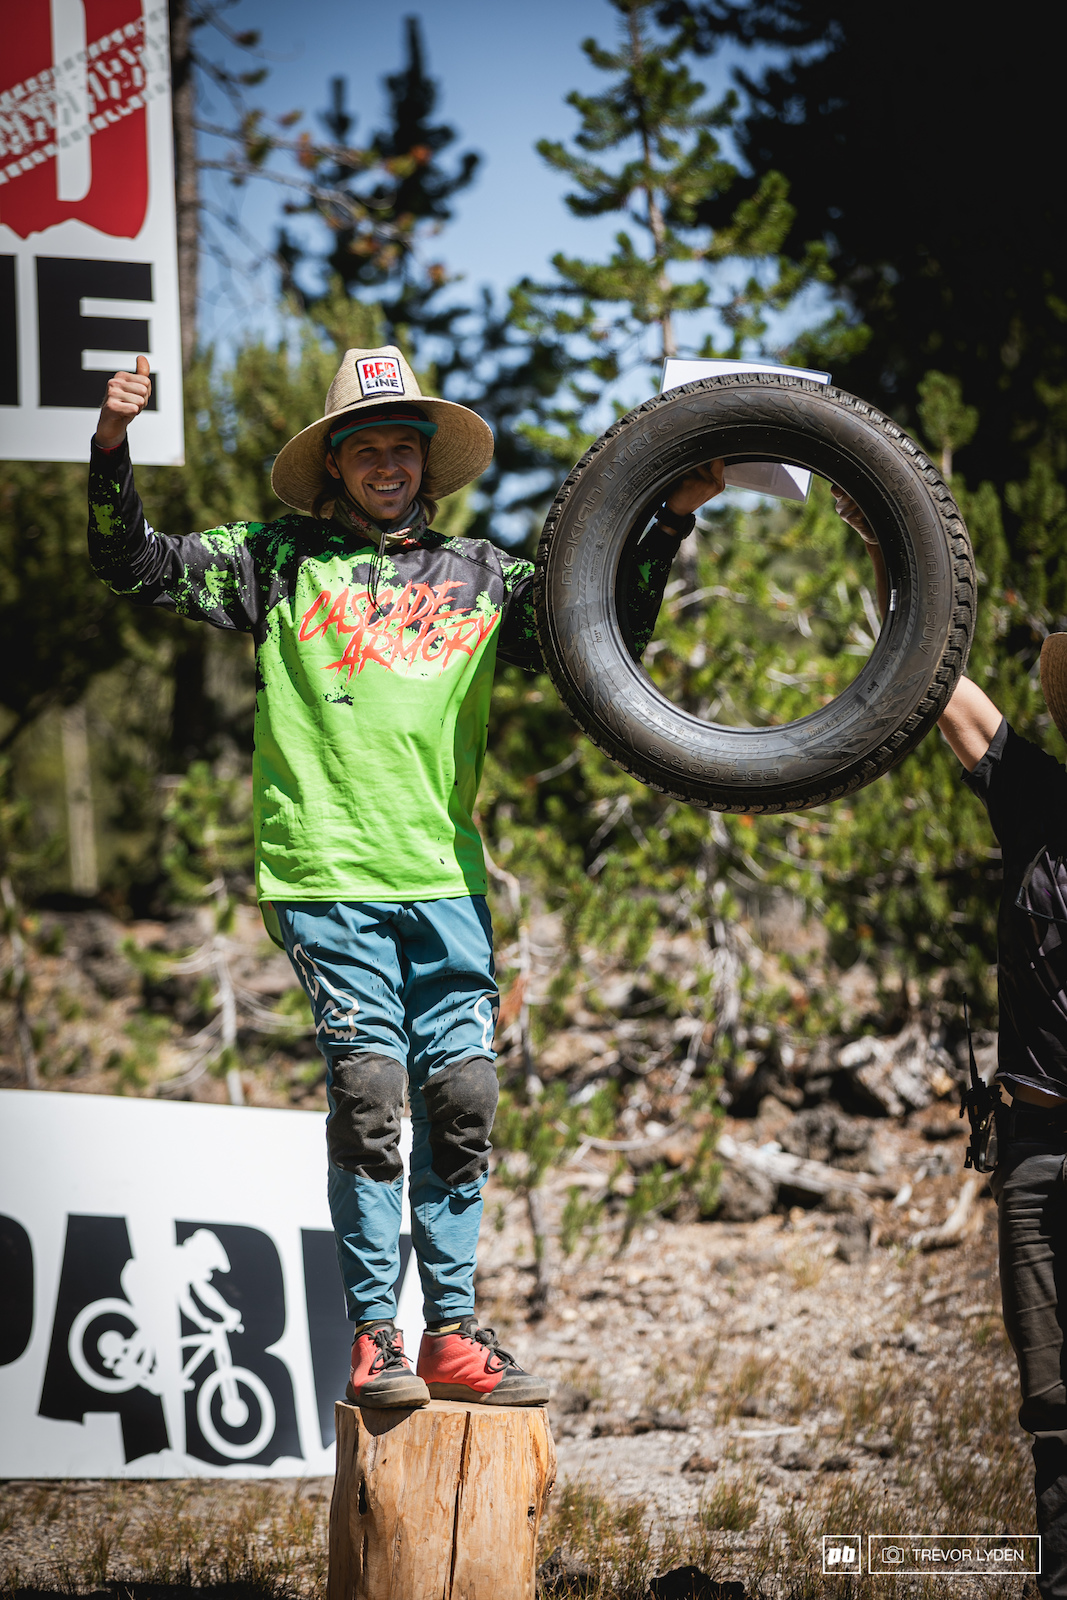 Austin Hempdogg got a new set of Nokian tires for his best trick. A huge whip with the foam finger on.